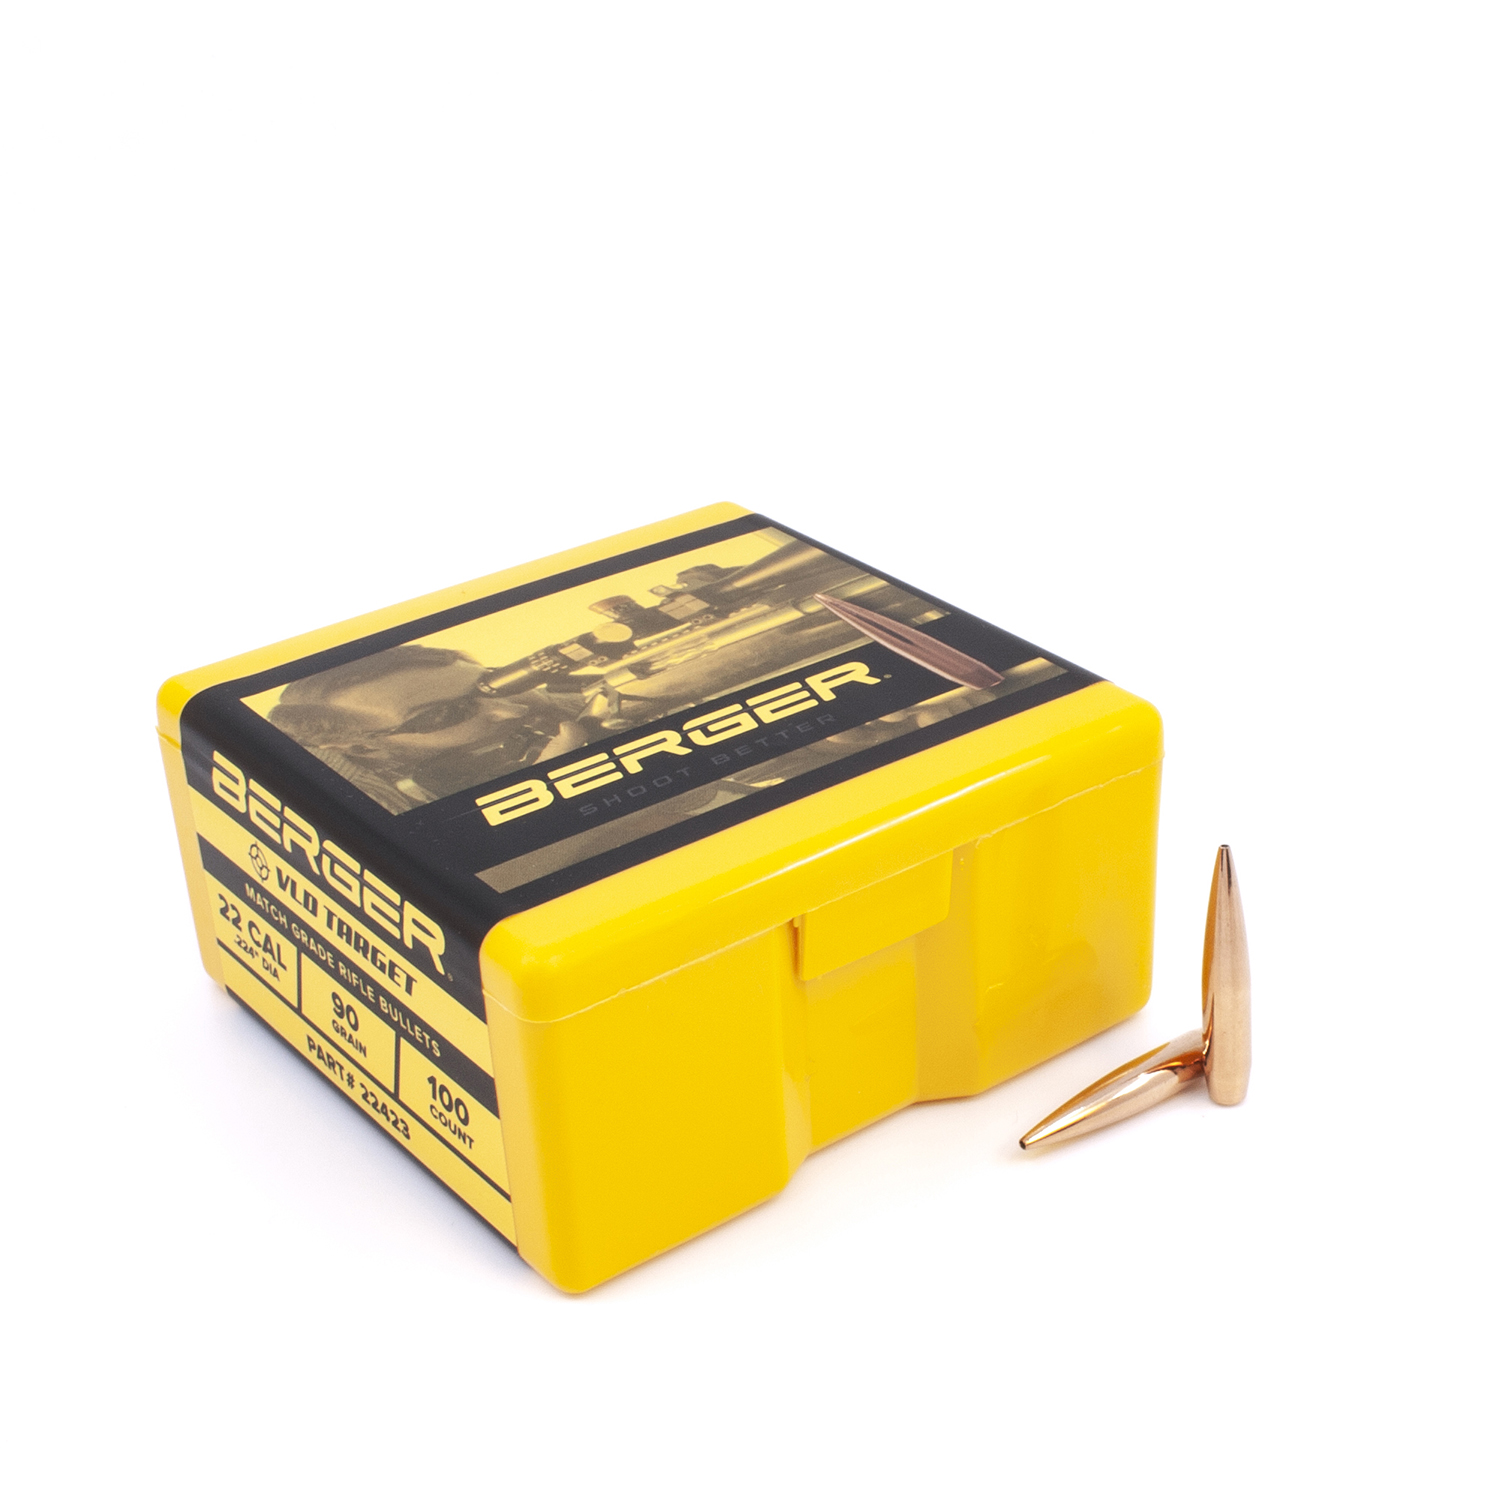 Berger Bullets - .22 cal, 90 gr. VLD Target - Box of 100